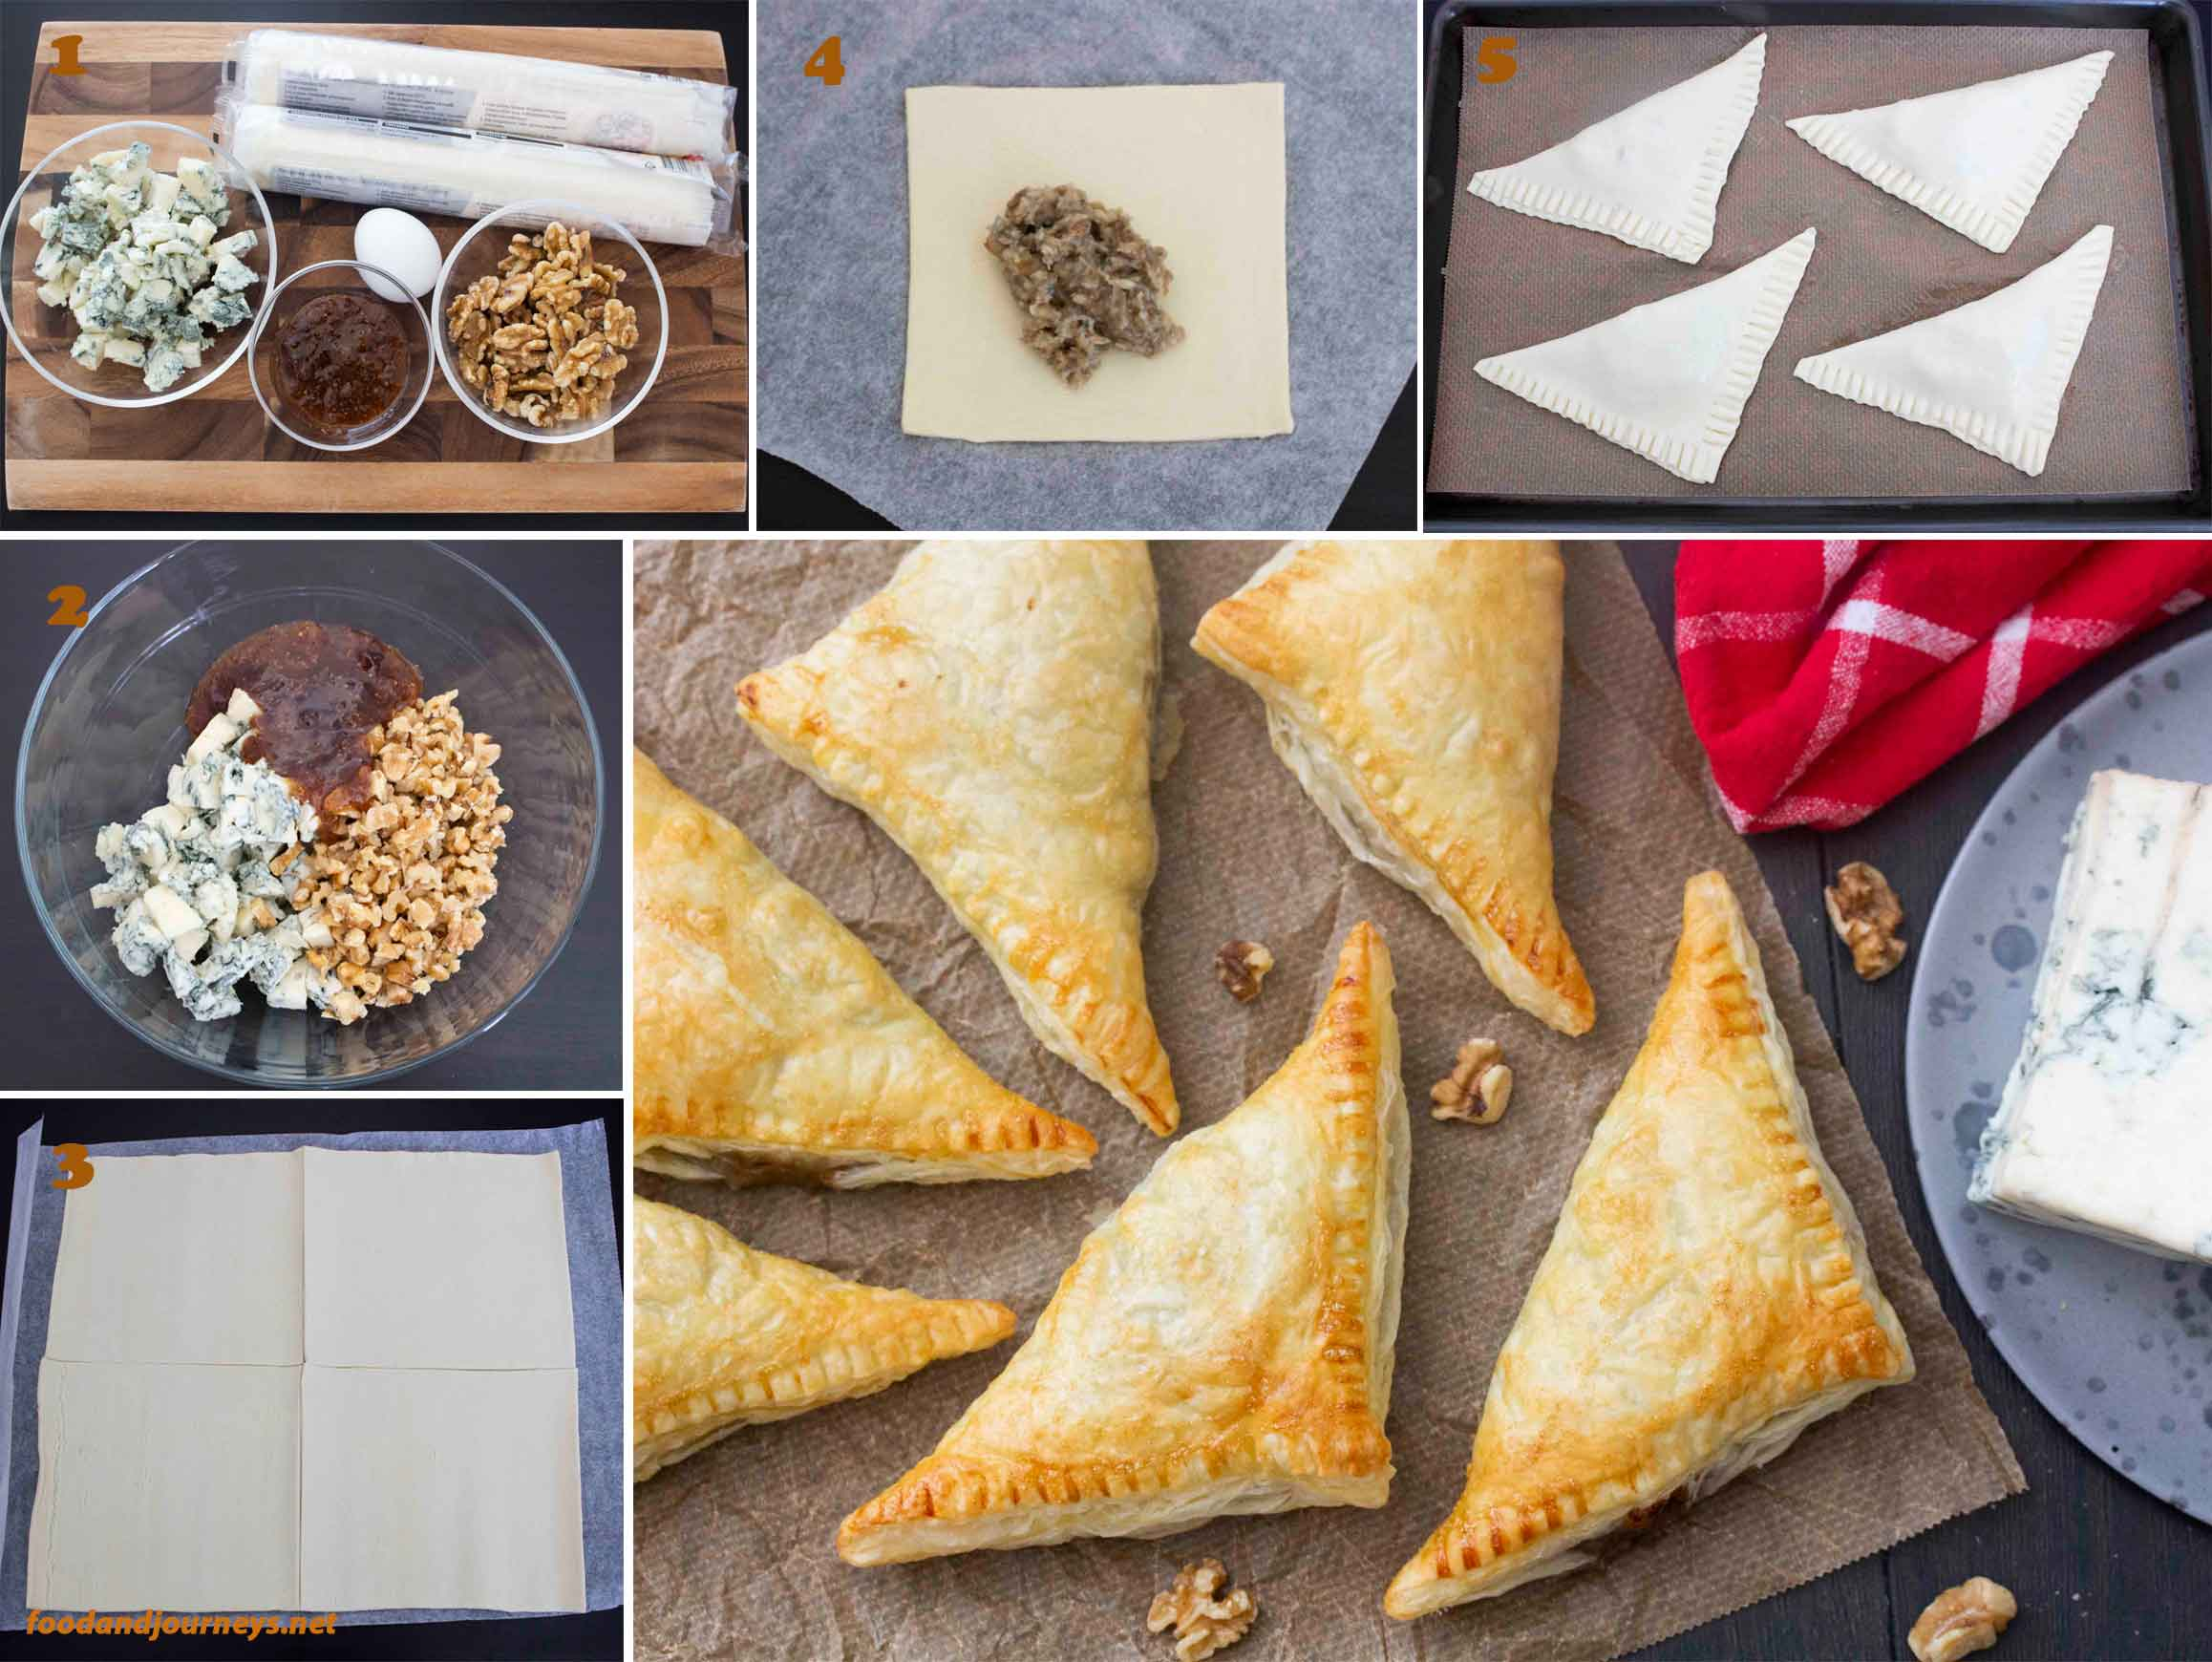 A collage of images showing the step by step process on how to make gorgonzola figs & walnut triangles